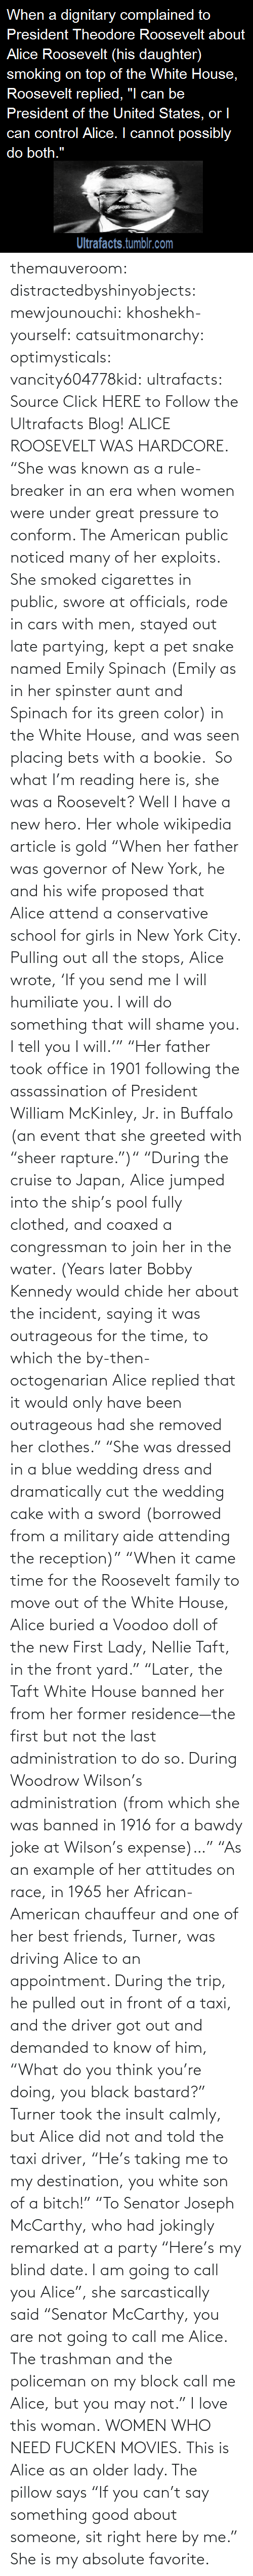 "Assassination, Cars, and Click: themauveroom: distractedbyshinyobjects:  mewjounouchi:  khoshekh-yourself:  catsuitmonarchy:  optimysticals:  vancity604778kid:  ultrafacts:     Source Click HERE to Follow the Ultrafacts Blog!     ALICE ROOSEVELT WAS HARDCORE. ""She was known as a rule-breaker in an era when women were under great pressure to conform. The American public noticed many of her exploits. She smoked cigarettes in public, swore at officials, rode in cars with men, stayed out late partying, kept a pet snake named Emily Spinach (Emily as in her spinster aunt and Spinach for its green color) in the White House, and was seen placing bets with a bookie.    So what I'm reading here is, she was a Roosevelt?  Well I have a new hero.  Her whole wikipedia article is gold ""When her father was governor of New York, he and his wife proposed that Alice attend a conservative school for girls in New York City. Pulling out all the stops, Alice wrote, 'If you send me I will humiliate you. I will do something that will shame you. I tell you I will.'"" ""Her father took office in 1901 following the assassination of President William McKinley, Jr. in Buffalo (an event that she greeted with ""sheer rapture."")"" ""During the cruise to Japan, Alice jumped into the ship's pool fully clothed, and coaxed a congressman to join her in the water. (Years later Bobby Kennedy would chide her about the incident, saying it was outrageous for the time, to which the by-then-octogenarian Alice replied that it would only have been outrageous had she removed her clothes."" ""She was dressed in a blue wedding dress and dramatically cut the wedding cake with a sword (borrowed from a military aide attending the reception)"" ""When it came time for the Roosevelt family to move out of the White House, Alice buried a Voodoo doll of the new First Lady, Nellie Taft, in the front yard."" ""Later, the Taft White House banned her from her former residence—the first but not the last administration to do so. During Woodrow Wilson's administration (from which she was banned in 1916 for a bawdy joke at Wilson's expense)…"" ""As an example of her attitudes on race, in 1965 her African-American chauffeur and one of her best friends, Turner, was driving Alice to an appointment. During the trip, he pulled out in front of a taxi, and the driver got out and demanded to know of him, ""What do you think you're doing, you black bastard?"" Turner took the insult calmly, but Alice did not and told the taxi driver, ""He's taking me to my destination, you white son of a bitch!"" ""To Senator Joseph McCarthy, who had jokingly remarked at a party ""Here's my blind date. I am going to call you Alice"", she sarcastically said ""Senator McCarthy, you are not going to call me Alice. The trashman and the policeman on my block call me Alice, but you may not.""  I love this woman.  WOMEN WHO NEED FUCKEN MOVIES.   This is Alice as an older lady. The pillow says ""If you can't say something good about someone, sit right here by me.""  She is my absolute favorite."